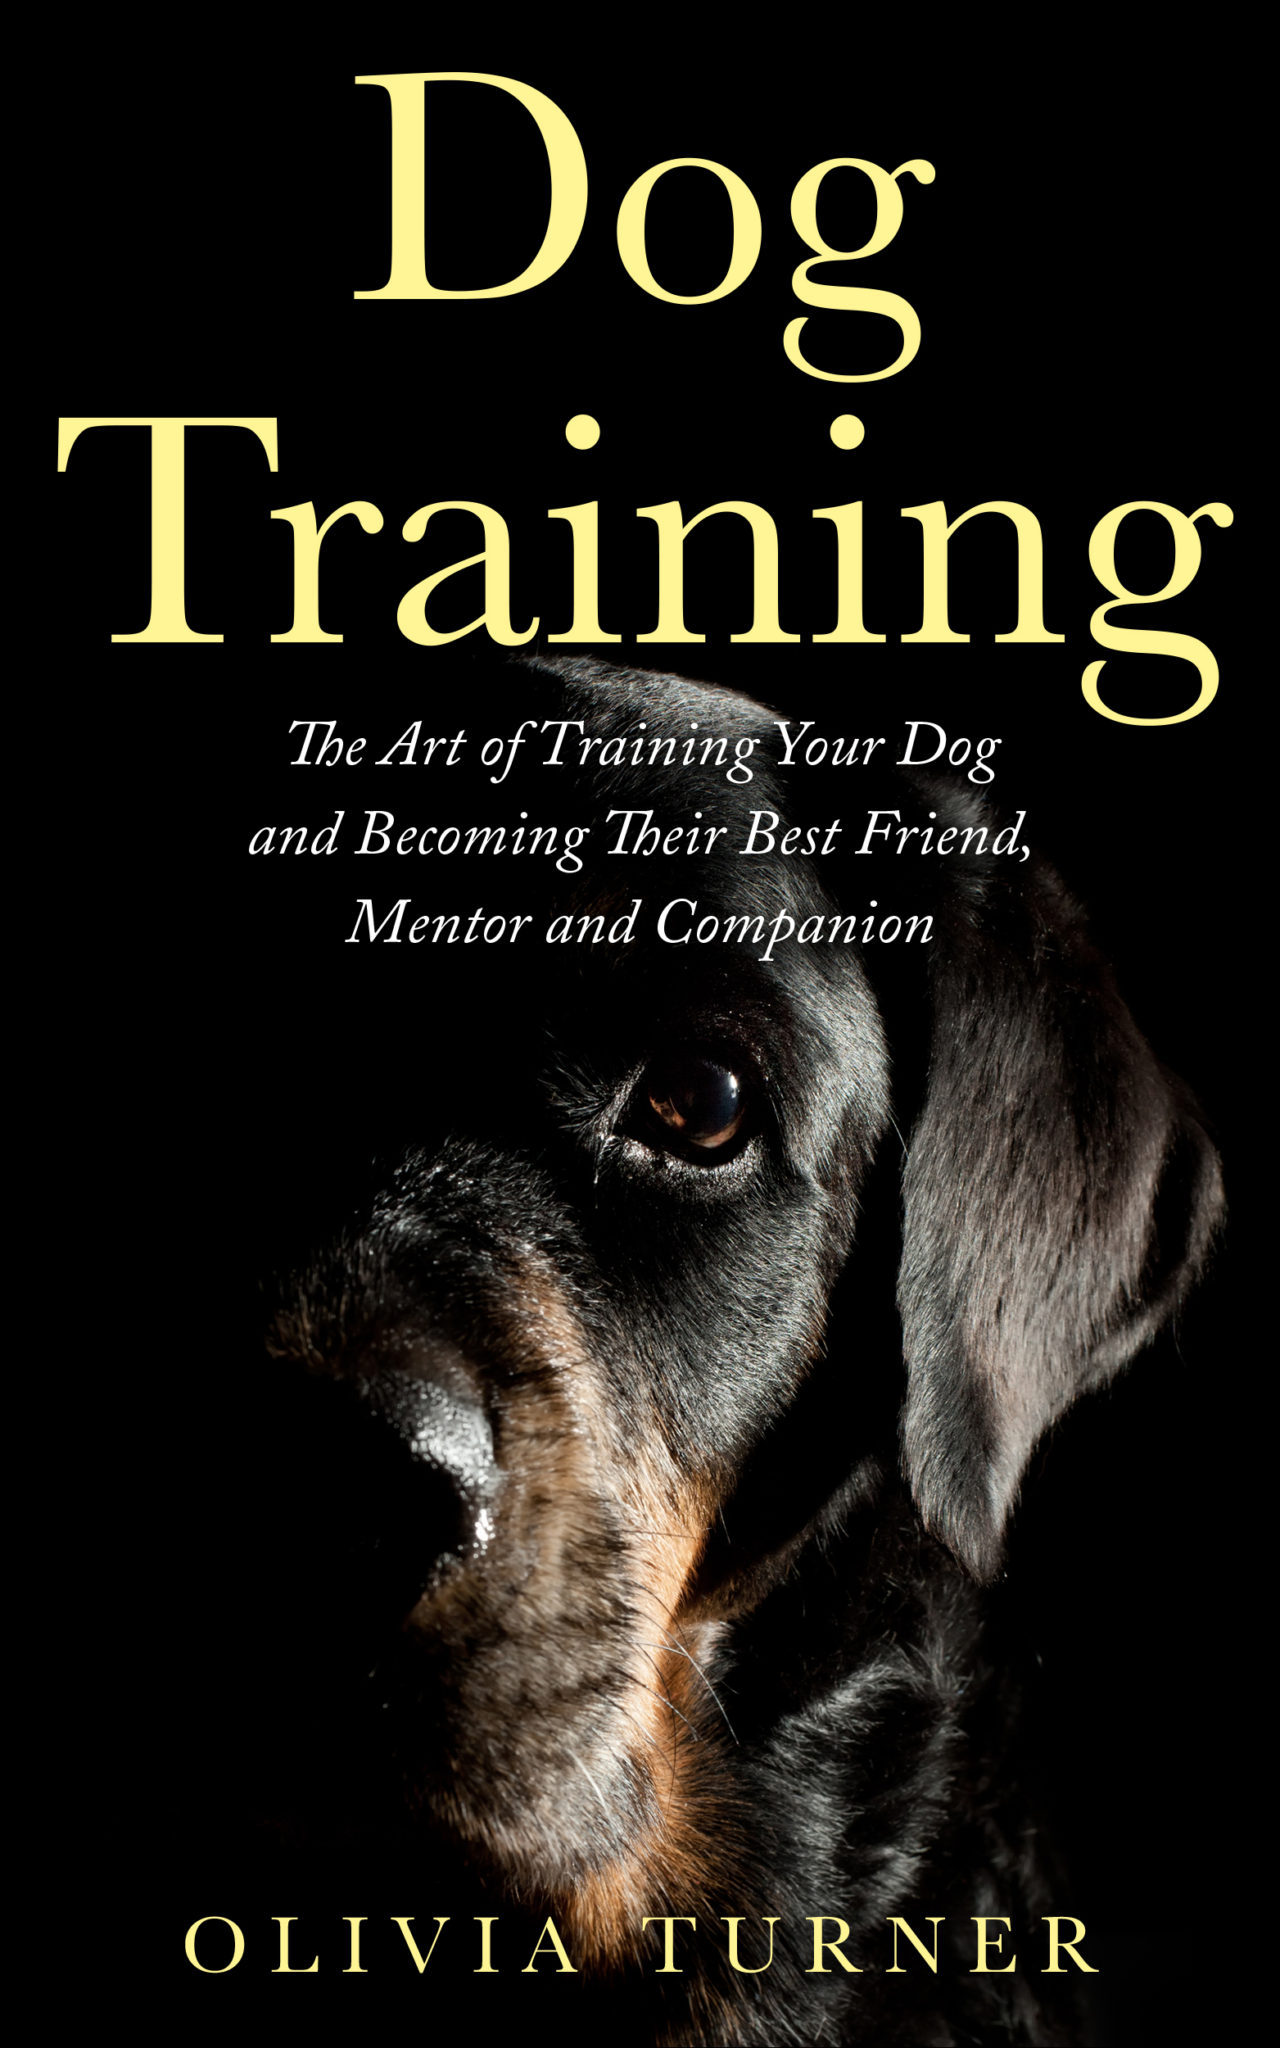 Dog Training: The Art Of Training Your Dog And Becoming Their Best Friend, Mentor And Companion